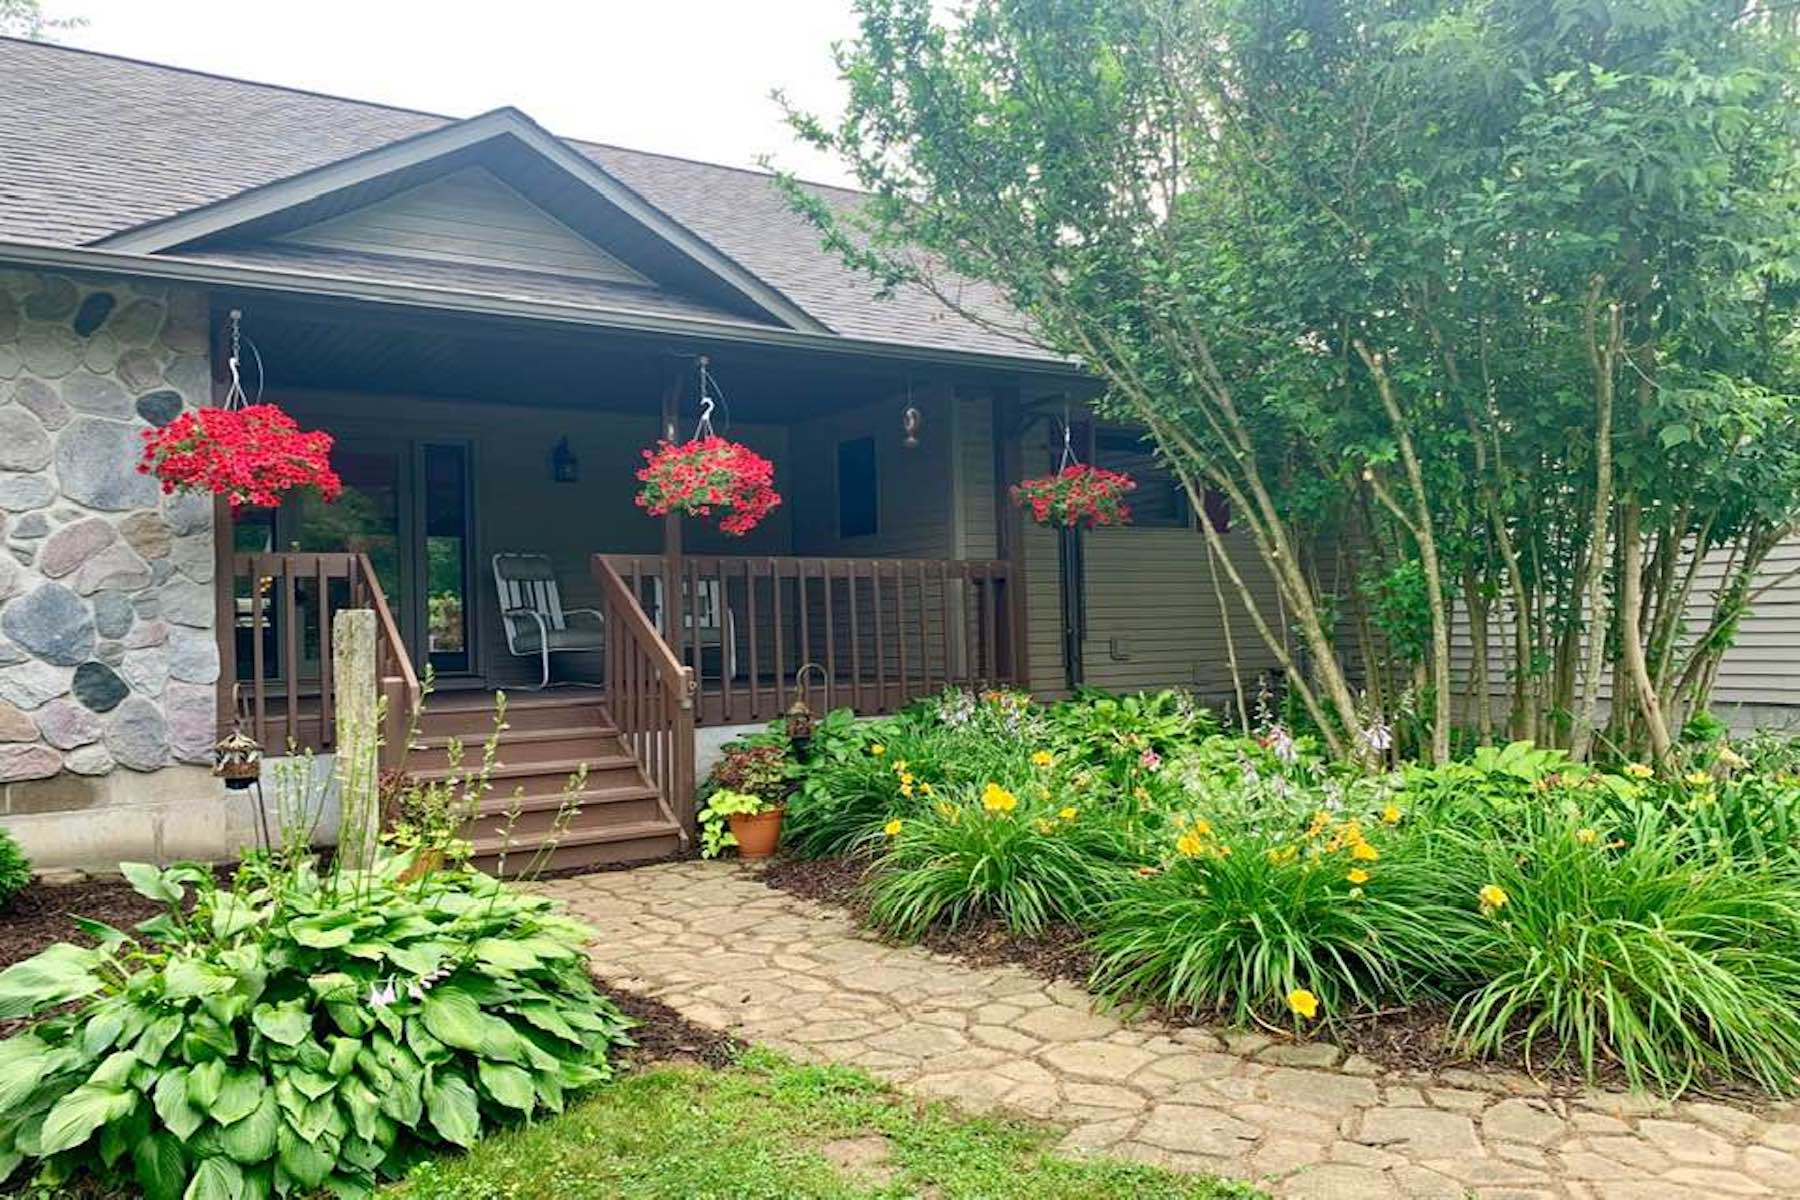 Single Family Homes for Sale at Highland Township 1226 White Lake Road Highland Twp, Michigan 48356 United States